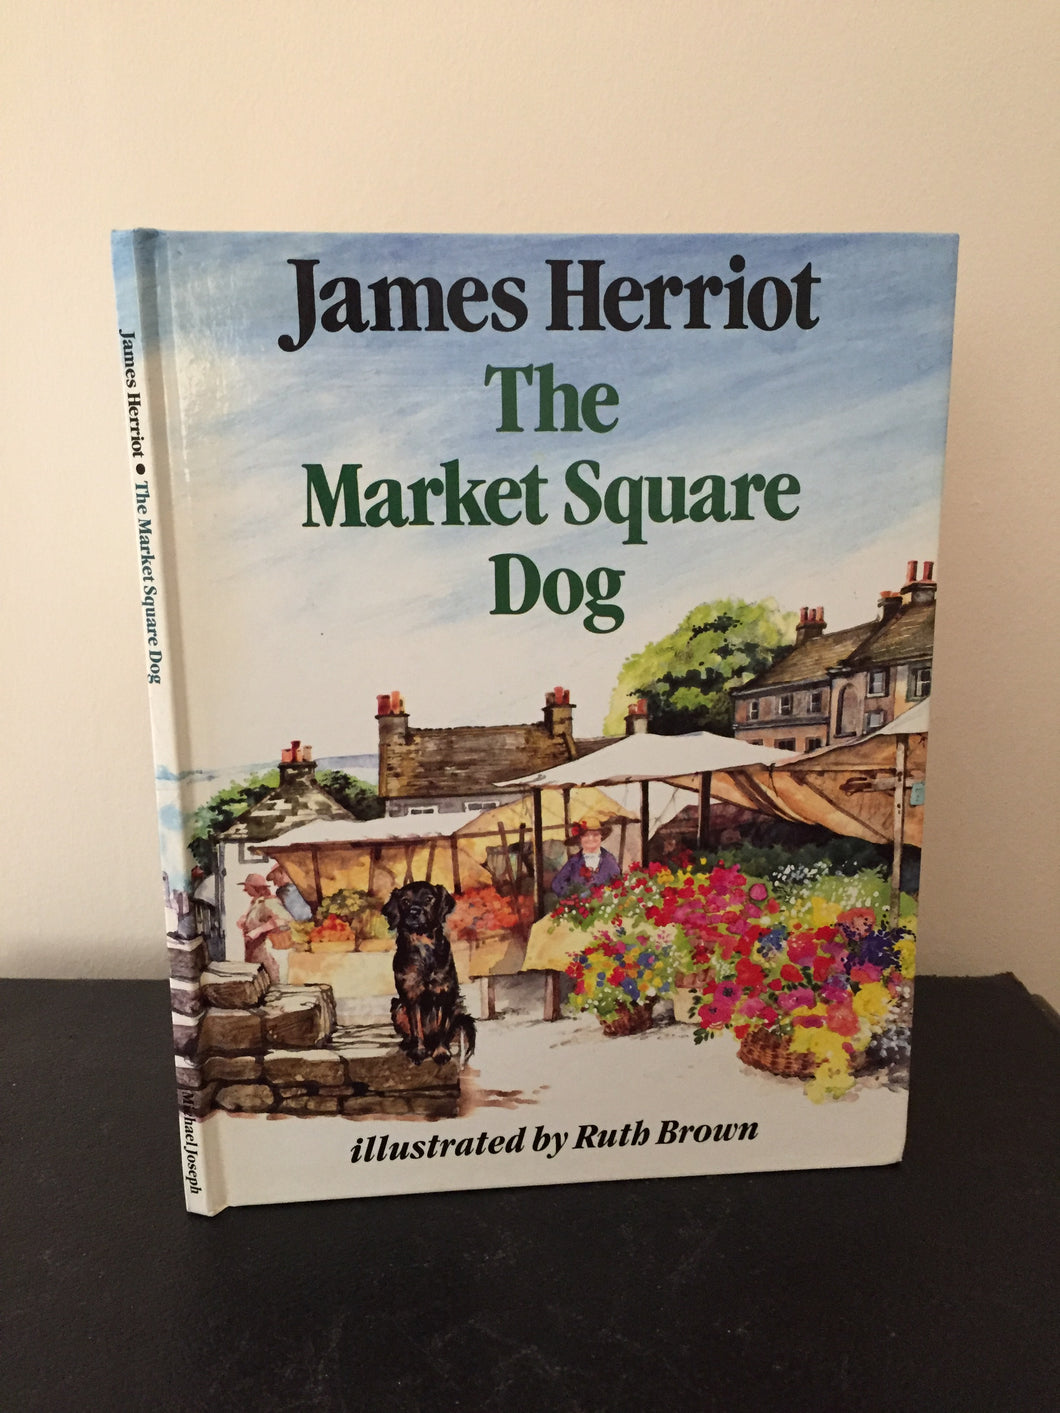 The Market Square Dog